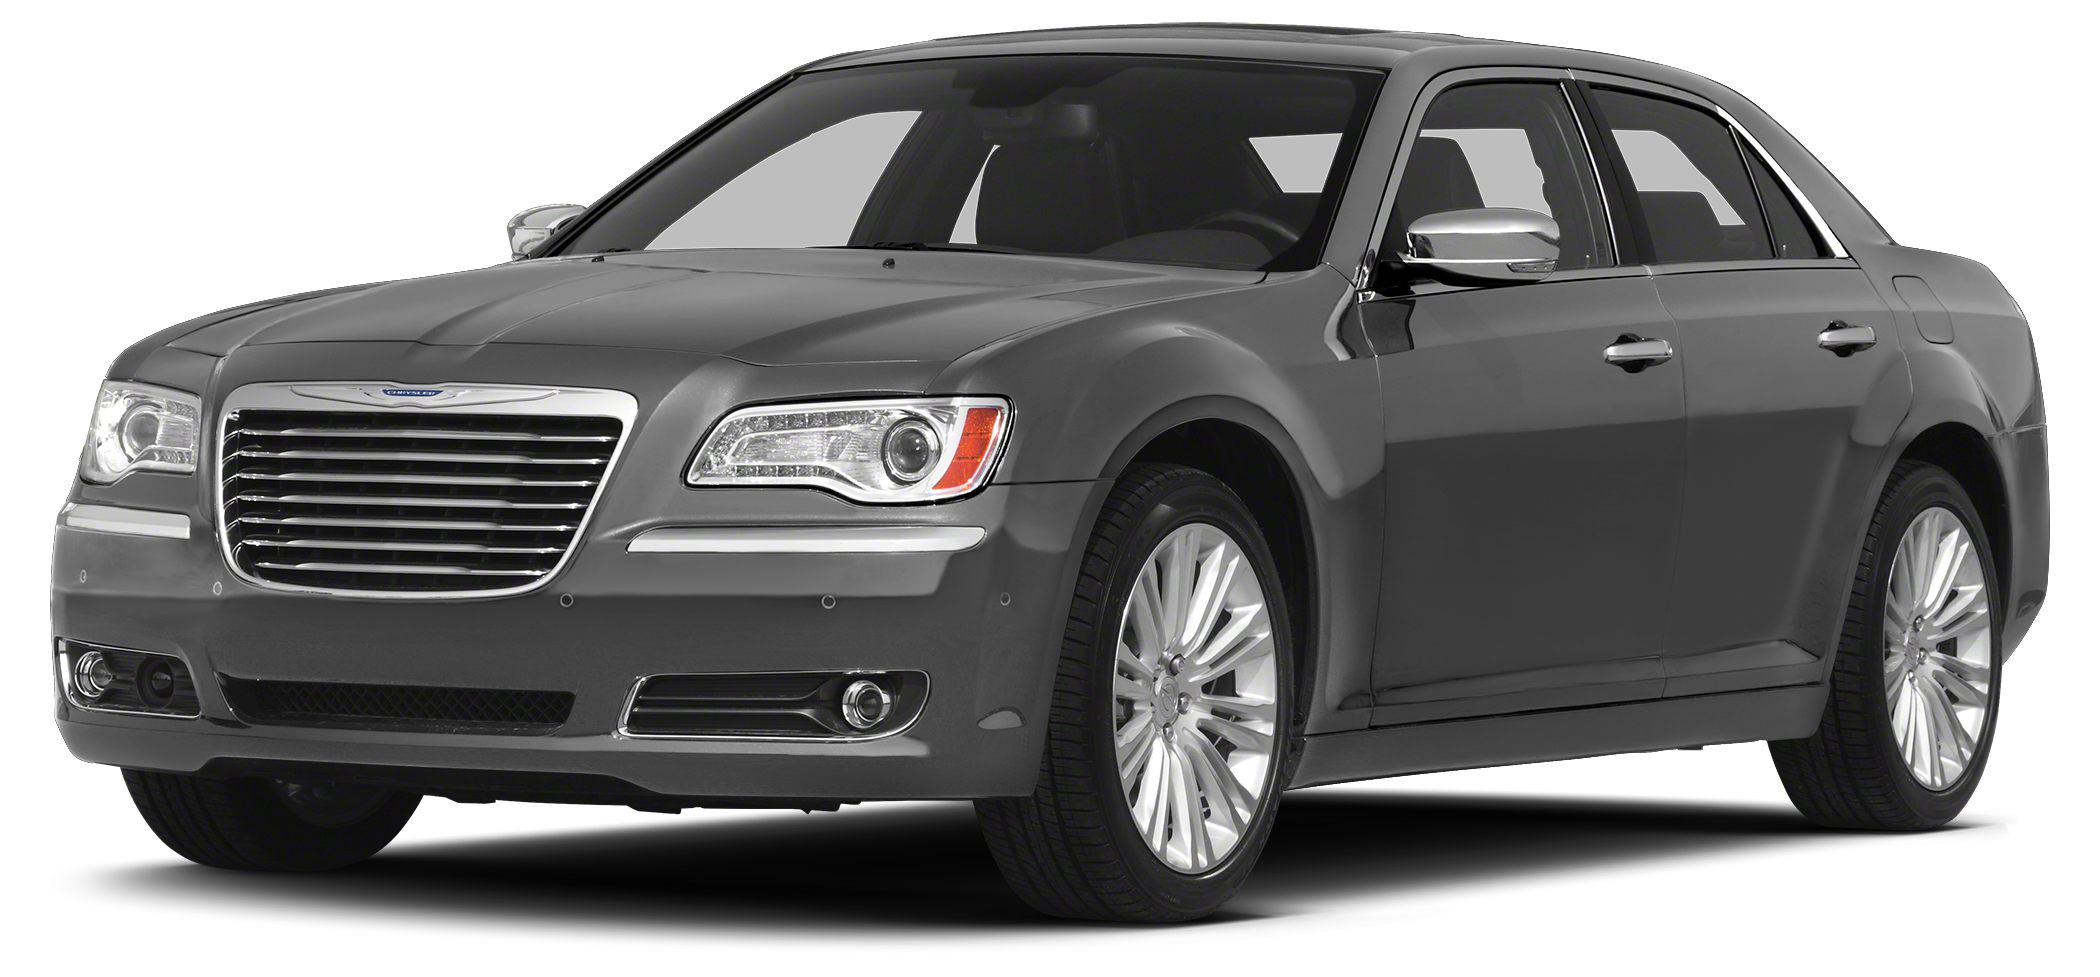 2013 Chrysler 300 Base Superb Condition EPA 31 MPG Hwy19 MPG City Heated Leather Seats Bluetoot